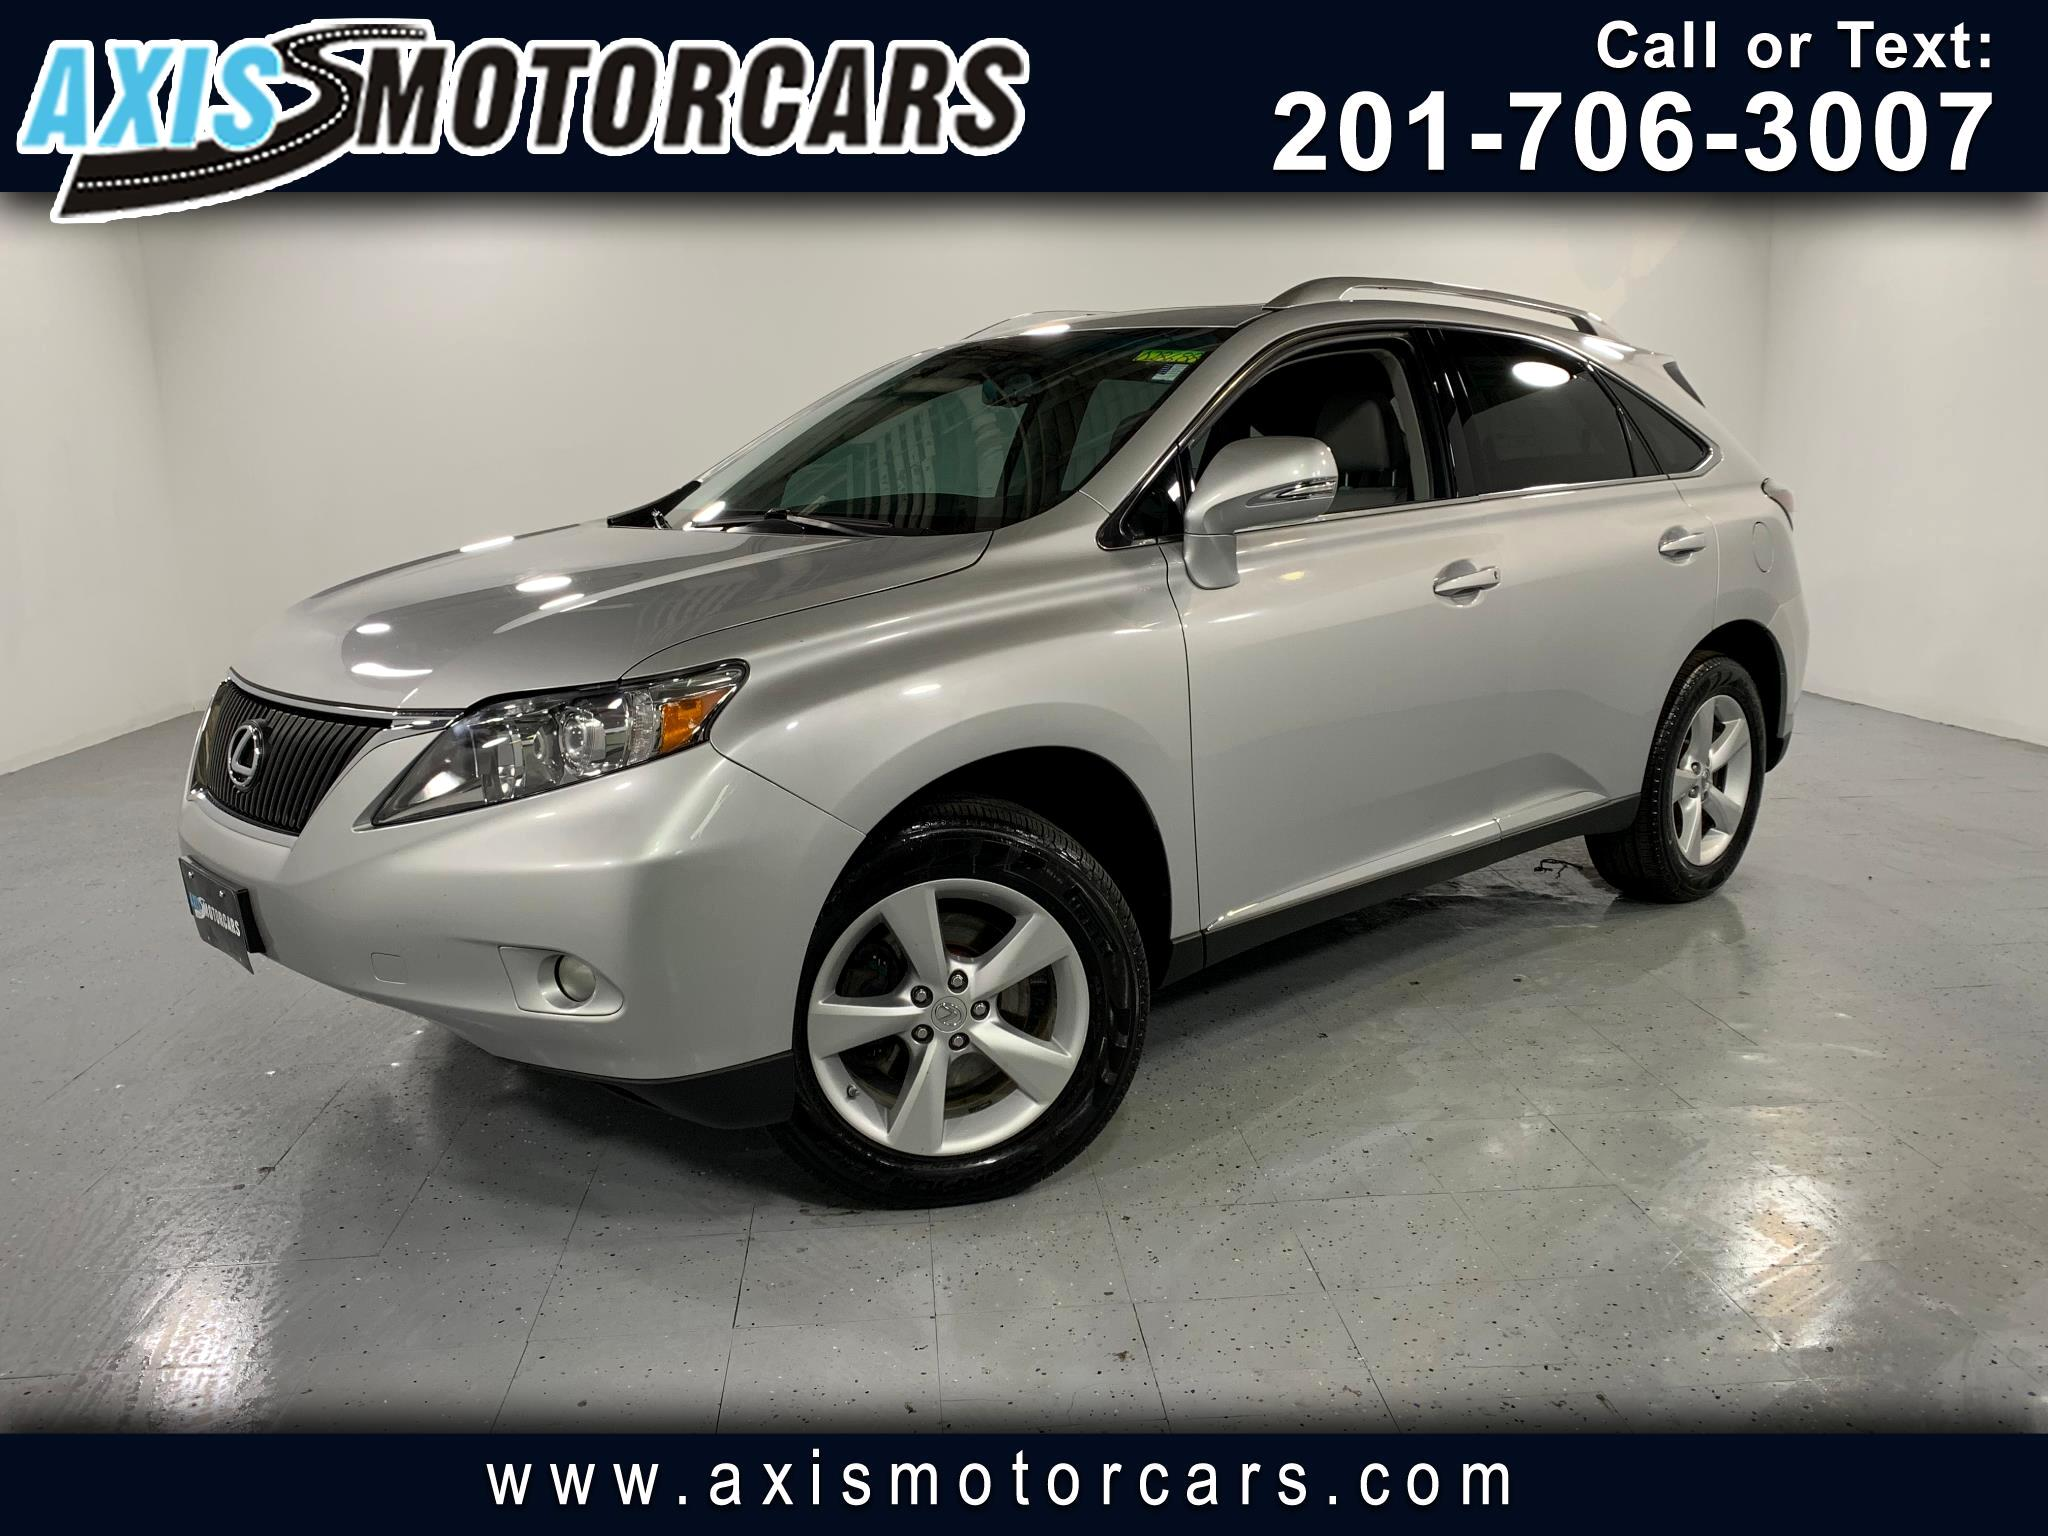 2010 Lexus RX 350 w/Backup Camera Sunroof Leather